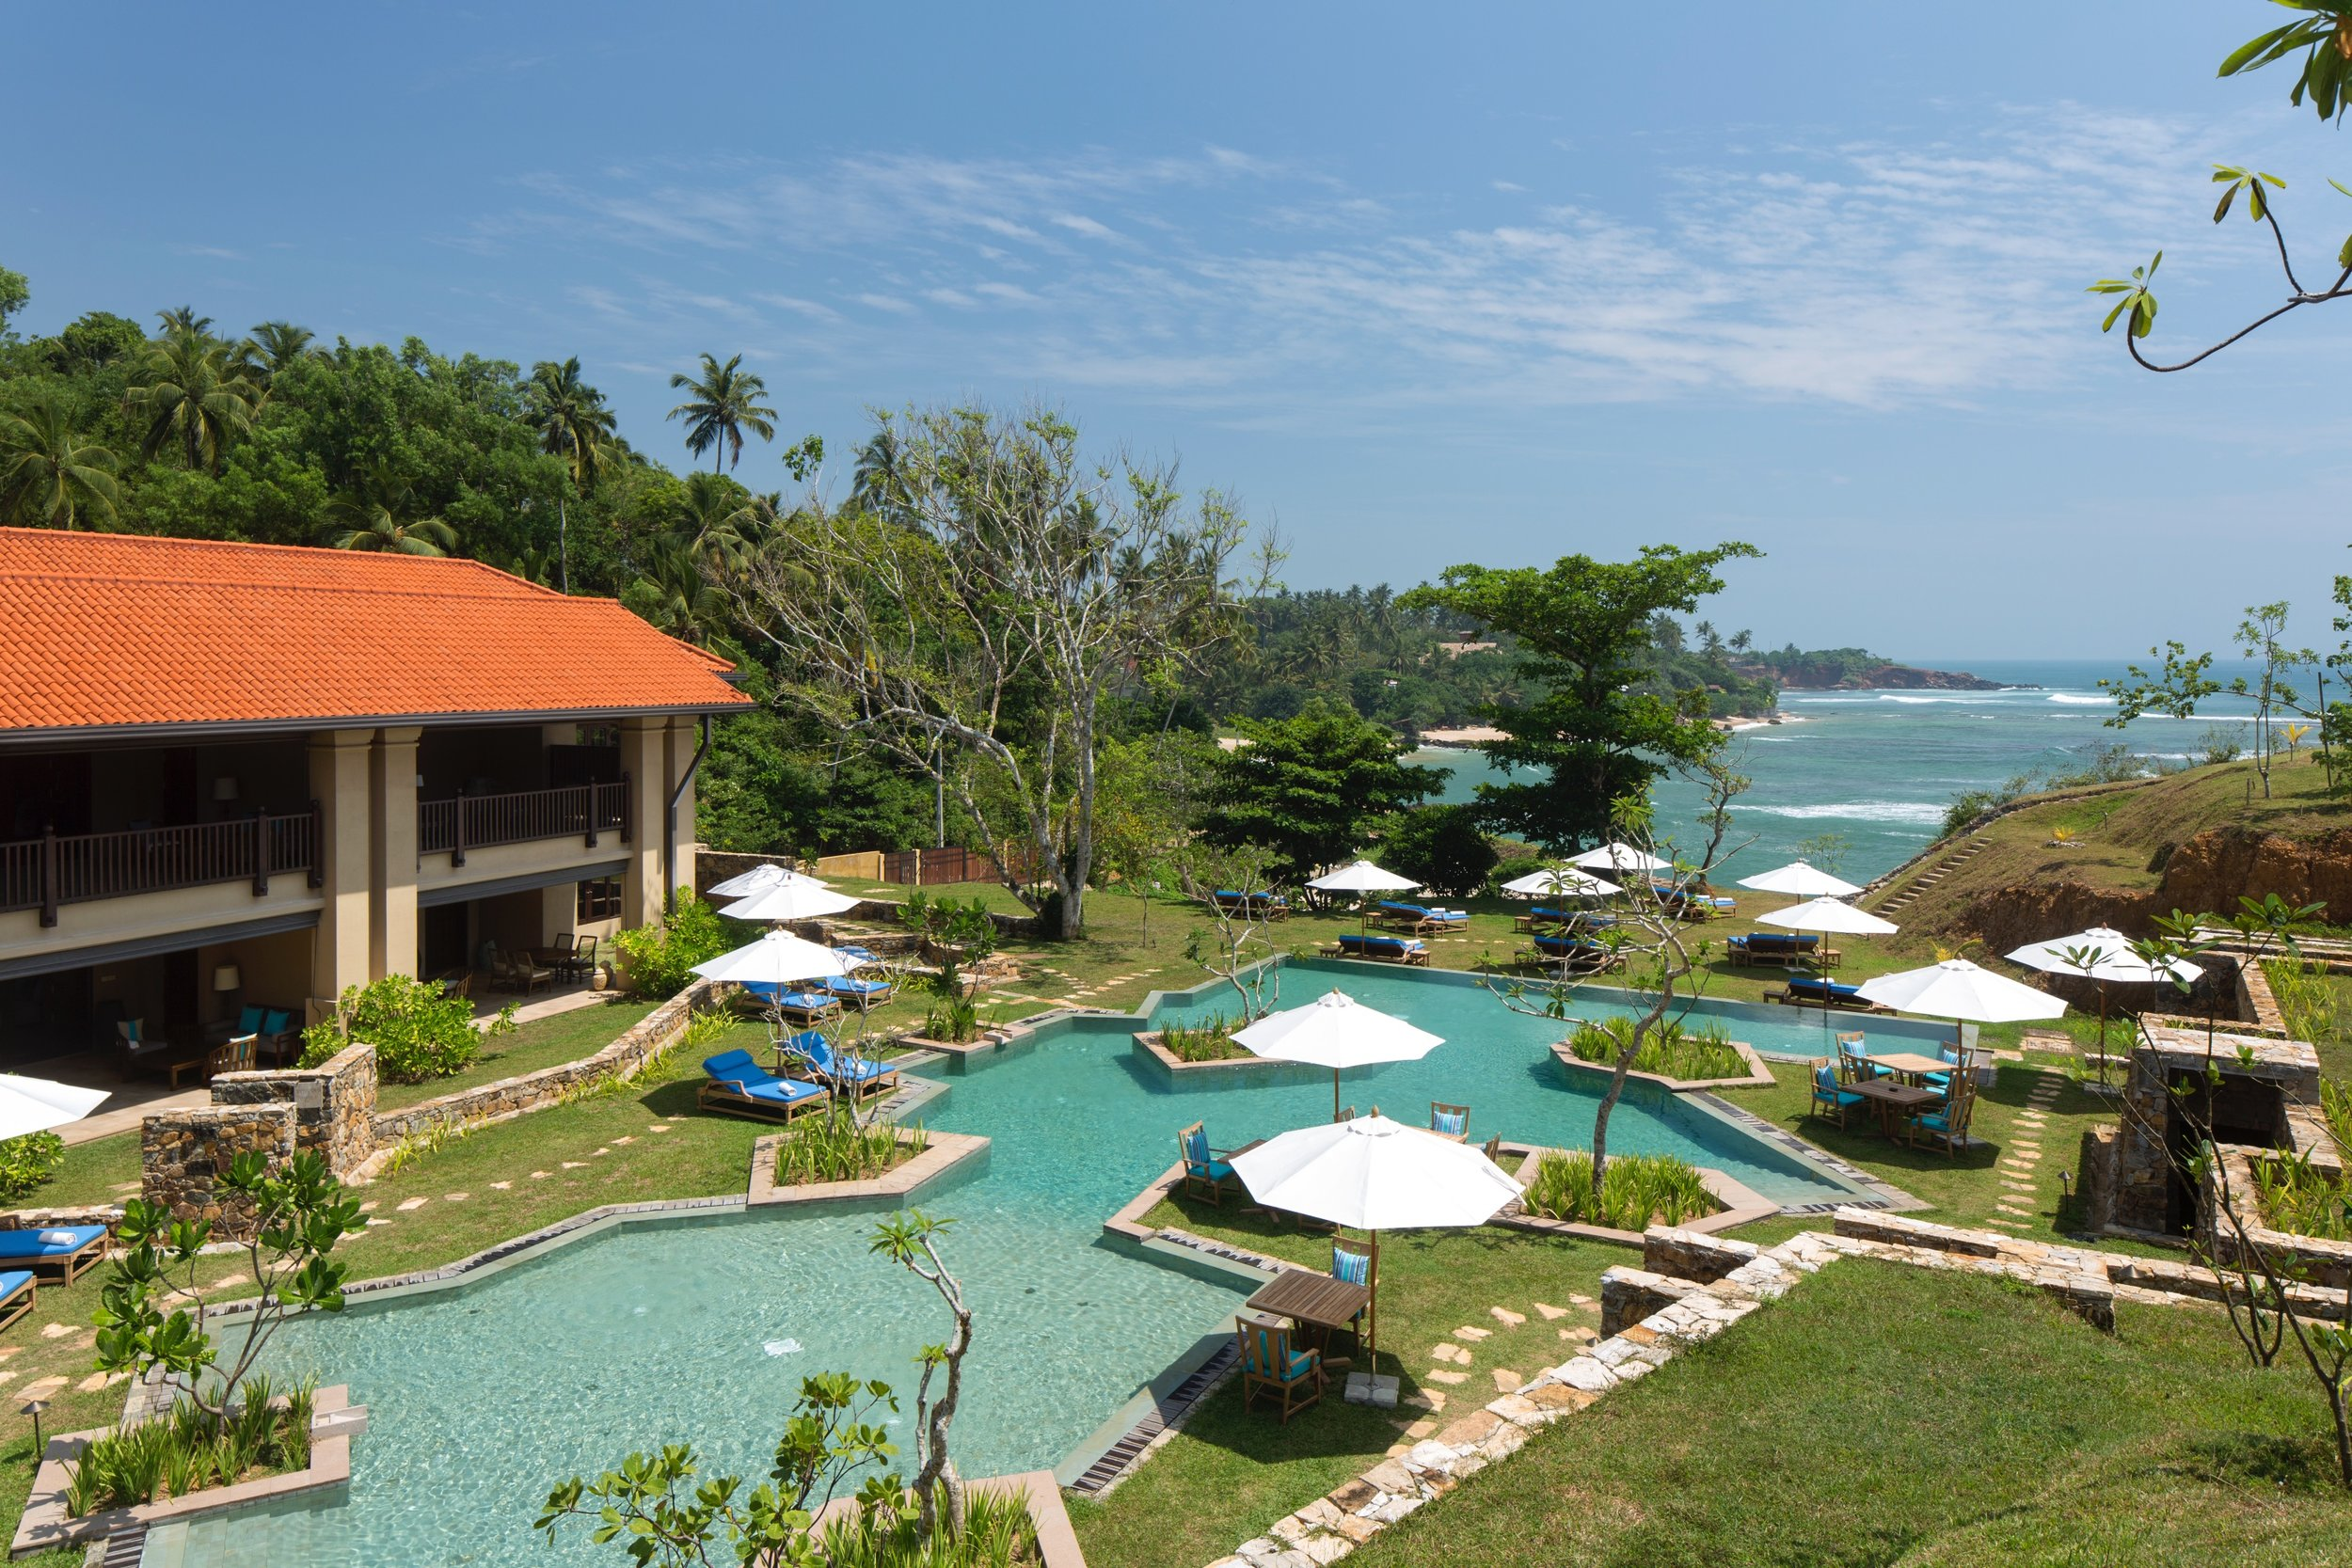 cove pool and suites.jpg